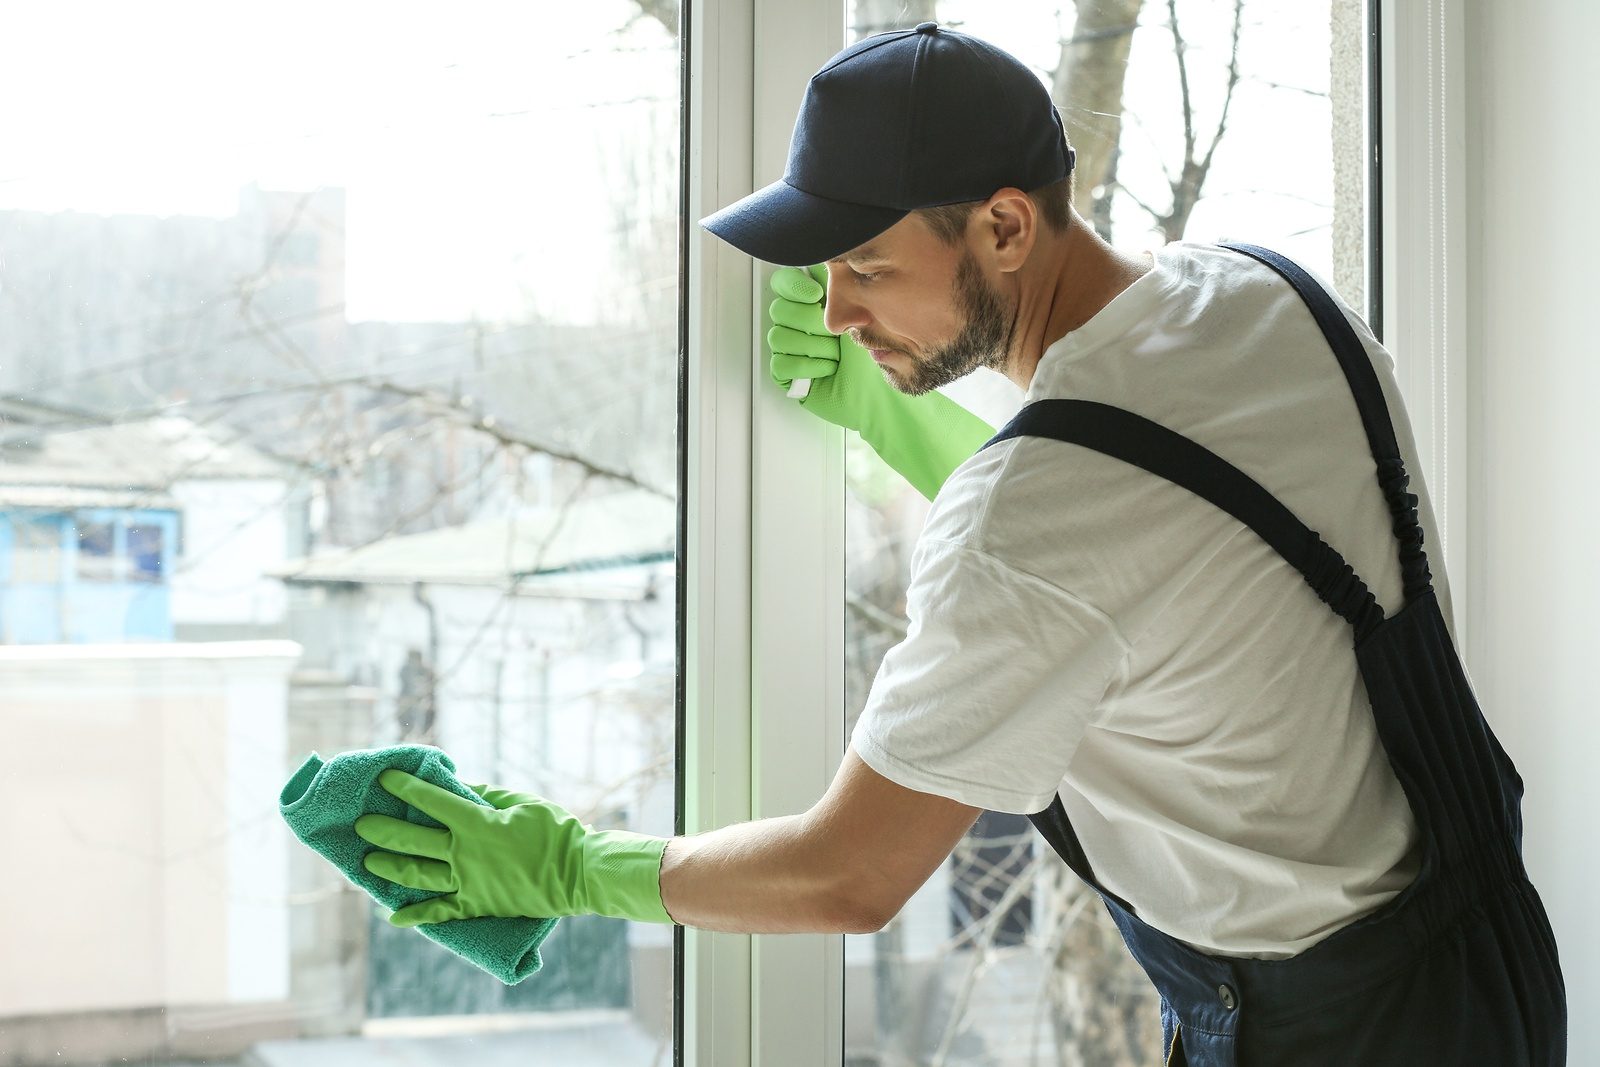 Detroit window cleaning, livonia window cleaning services, ann arbor window cleaning company, downriver window cleaning, farmington hills window cleaning,